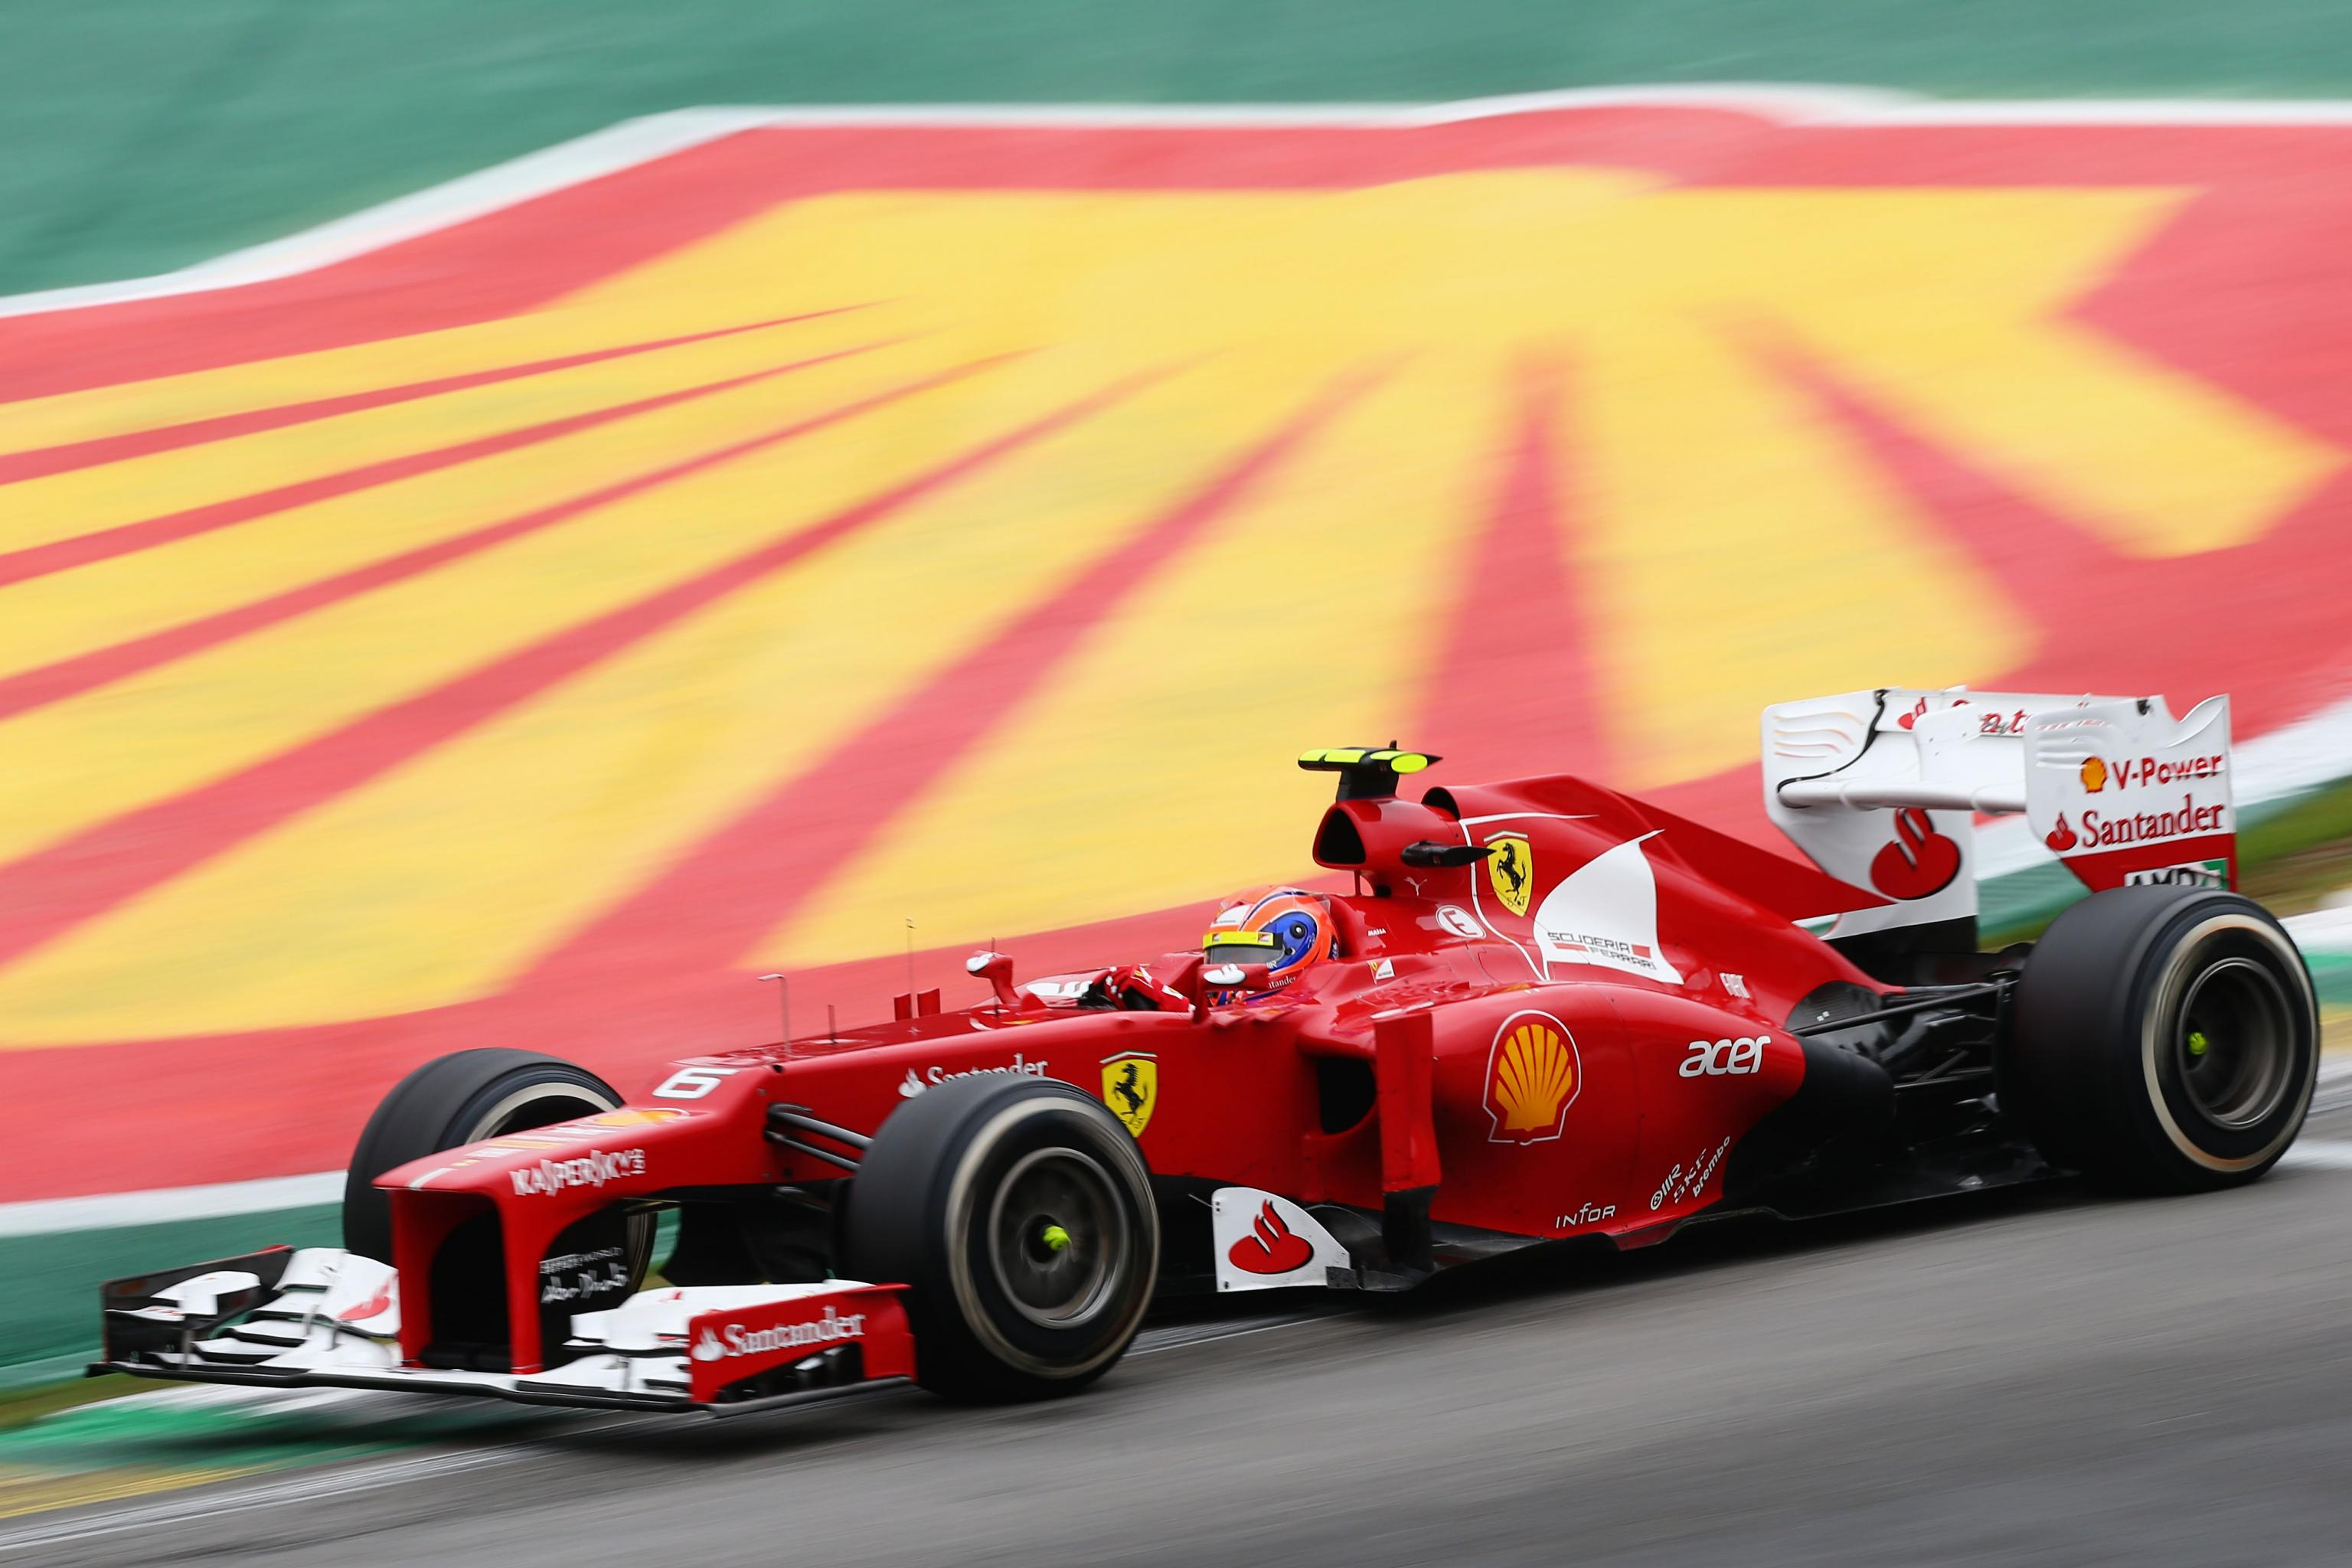 Formula 1 2012 Was Ferrari S Car As Bad As They Tried To Make Us Believe Bleacher Report Latest News Videos And Highlights